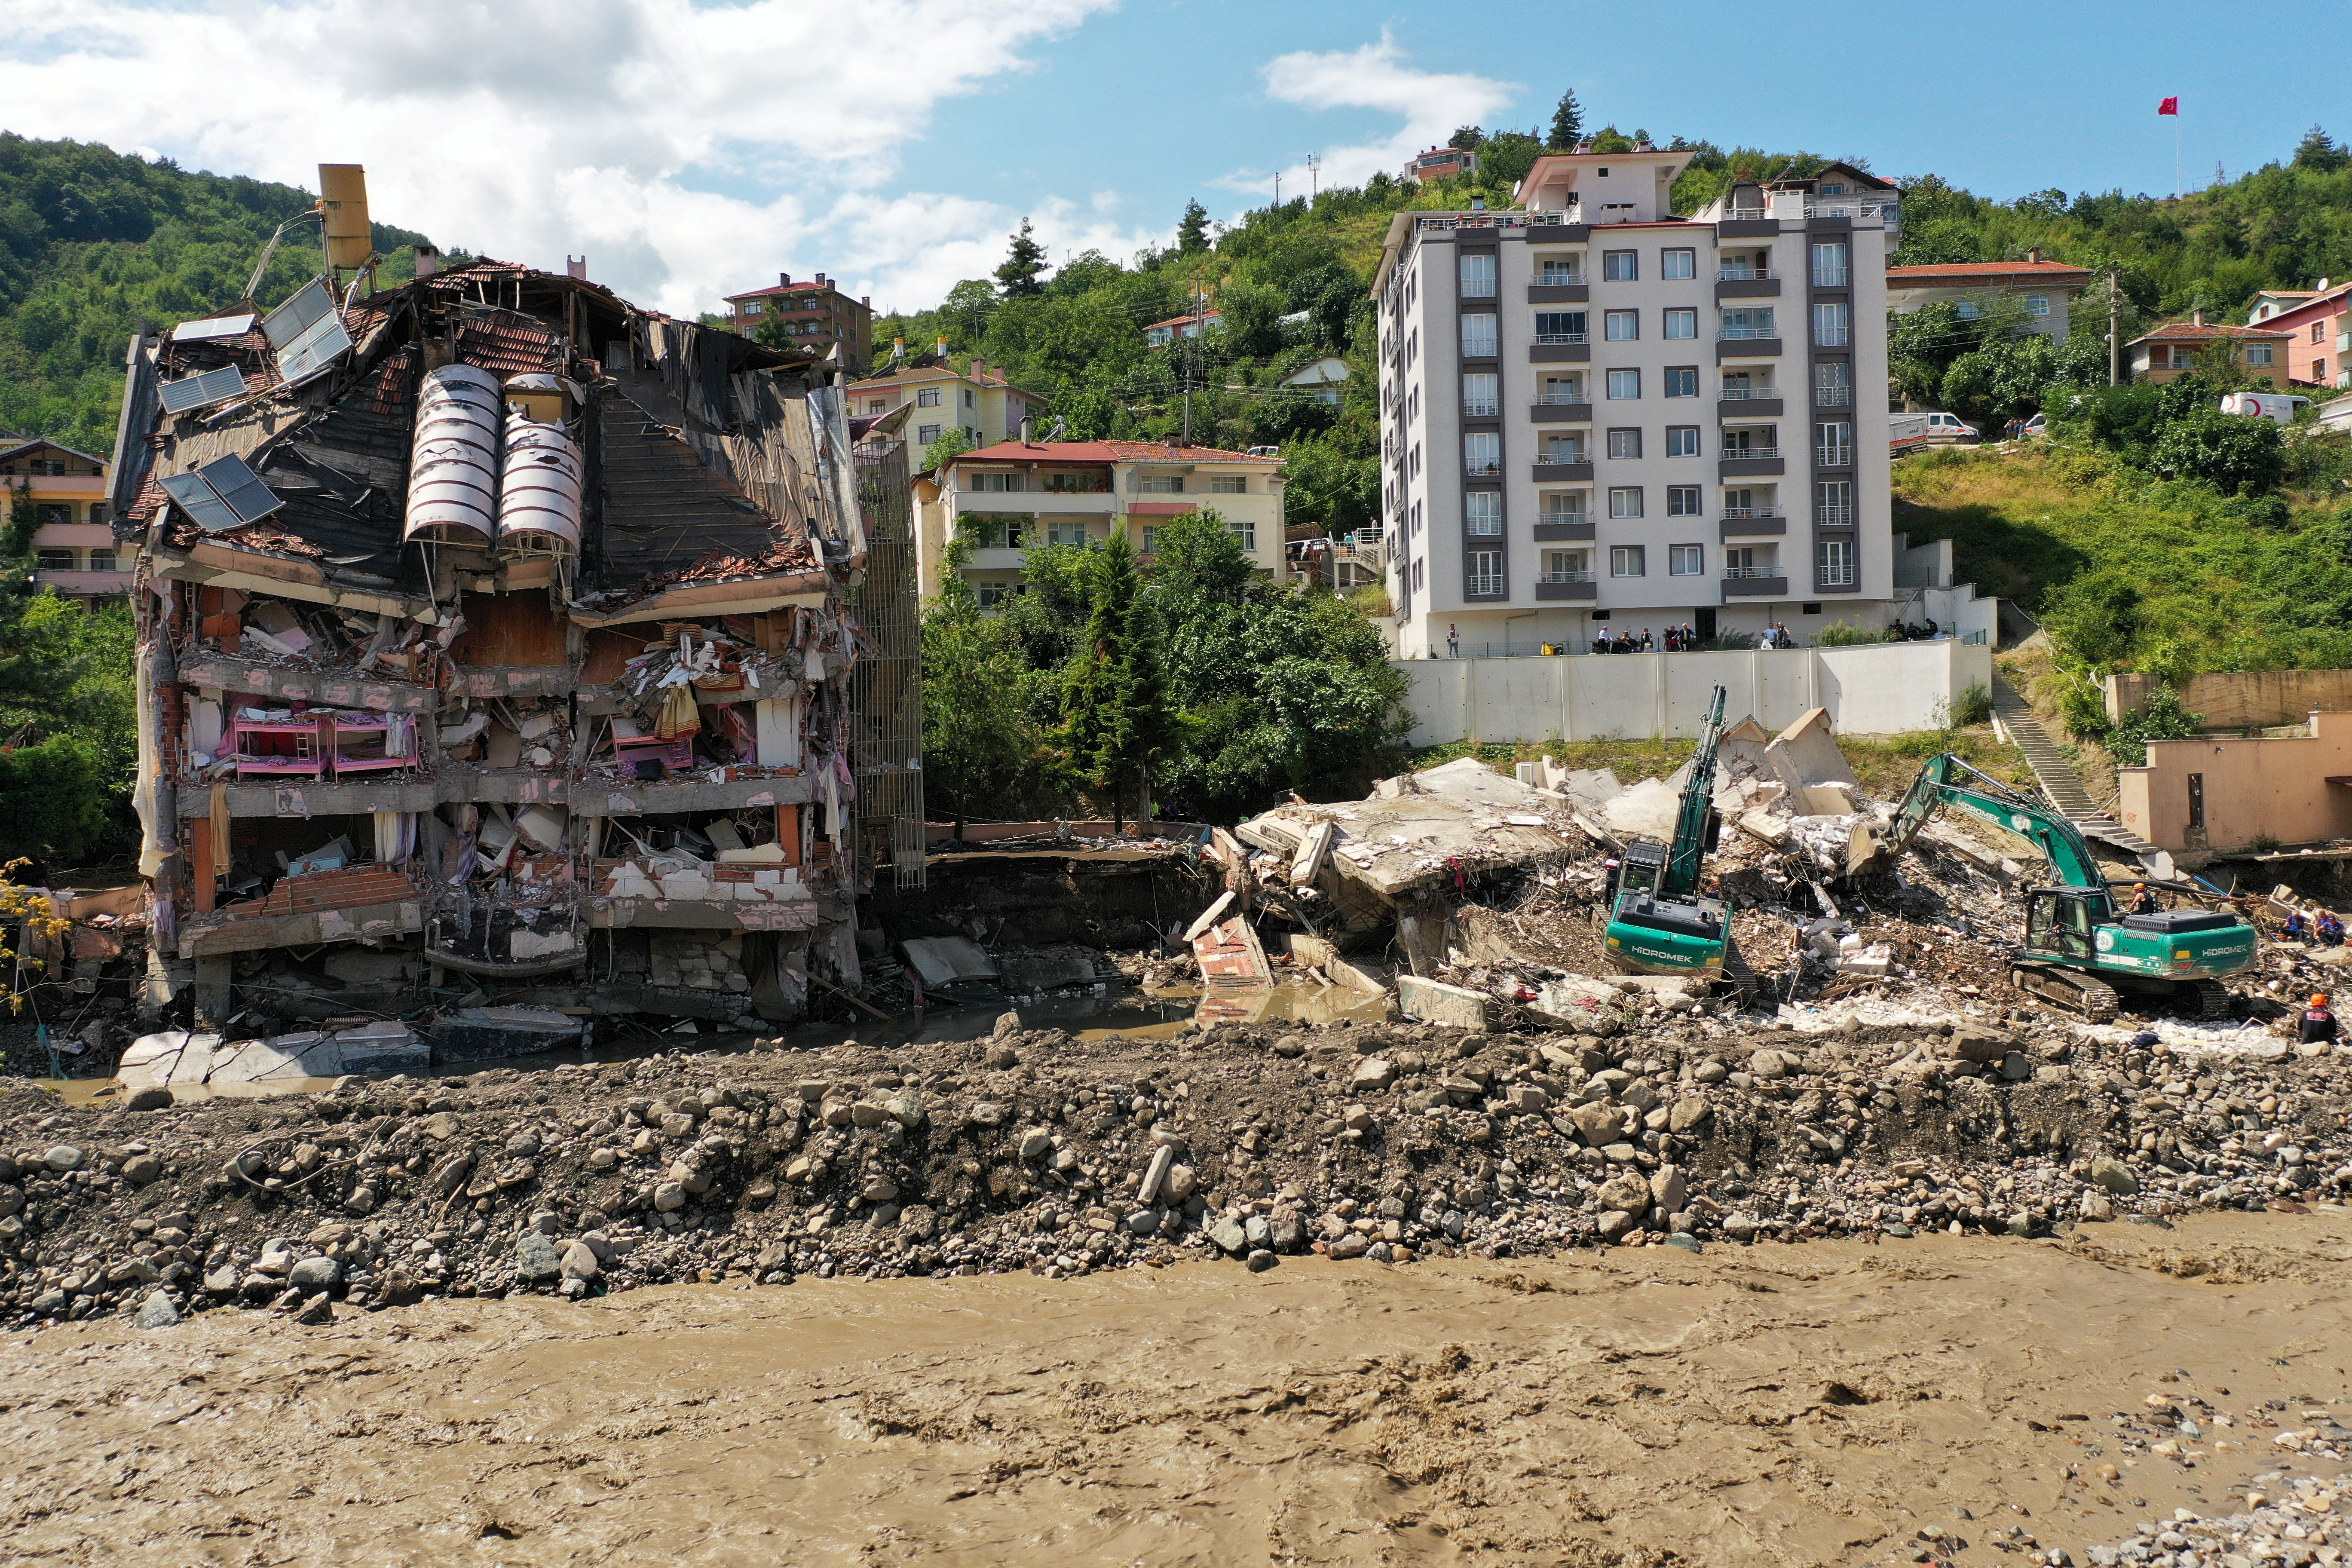 A view shows a partially collapsed building, as the area was hit by flash floods that swept through towns in the Turkish Black Sea region, in the town of Bozkurt, in Kastamonu province, Turkey, August 14, 2021. Picture taken with a drone. REUTERS/Mehmet Emin Caliskan